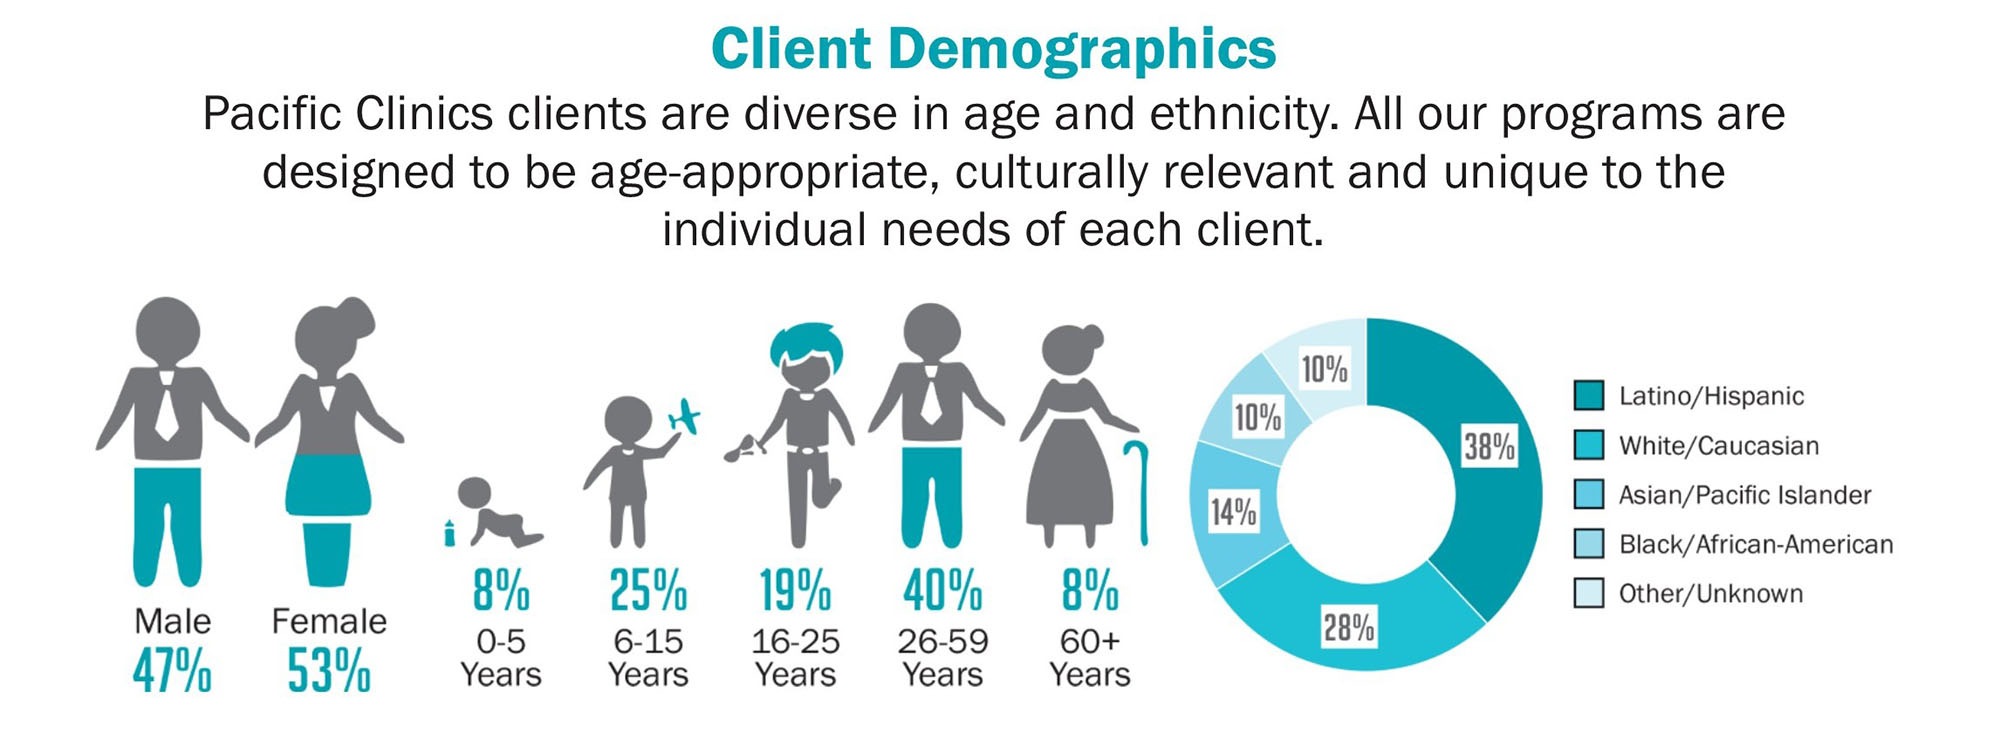 Pacific Clinics clients are diverse in age and ethnicity. All our programs are designed to be age-appropriate, culturally relevant and unique to the individual needs of each client.